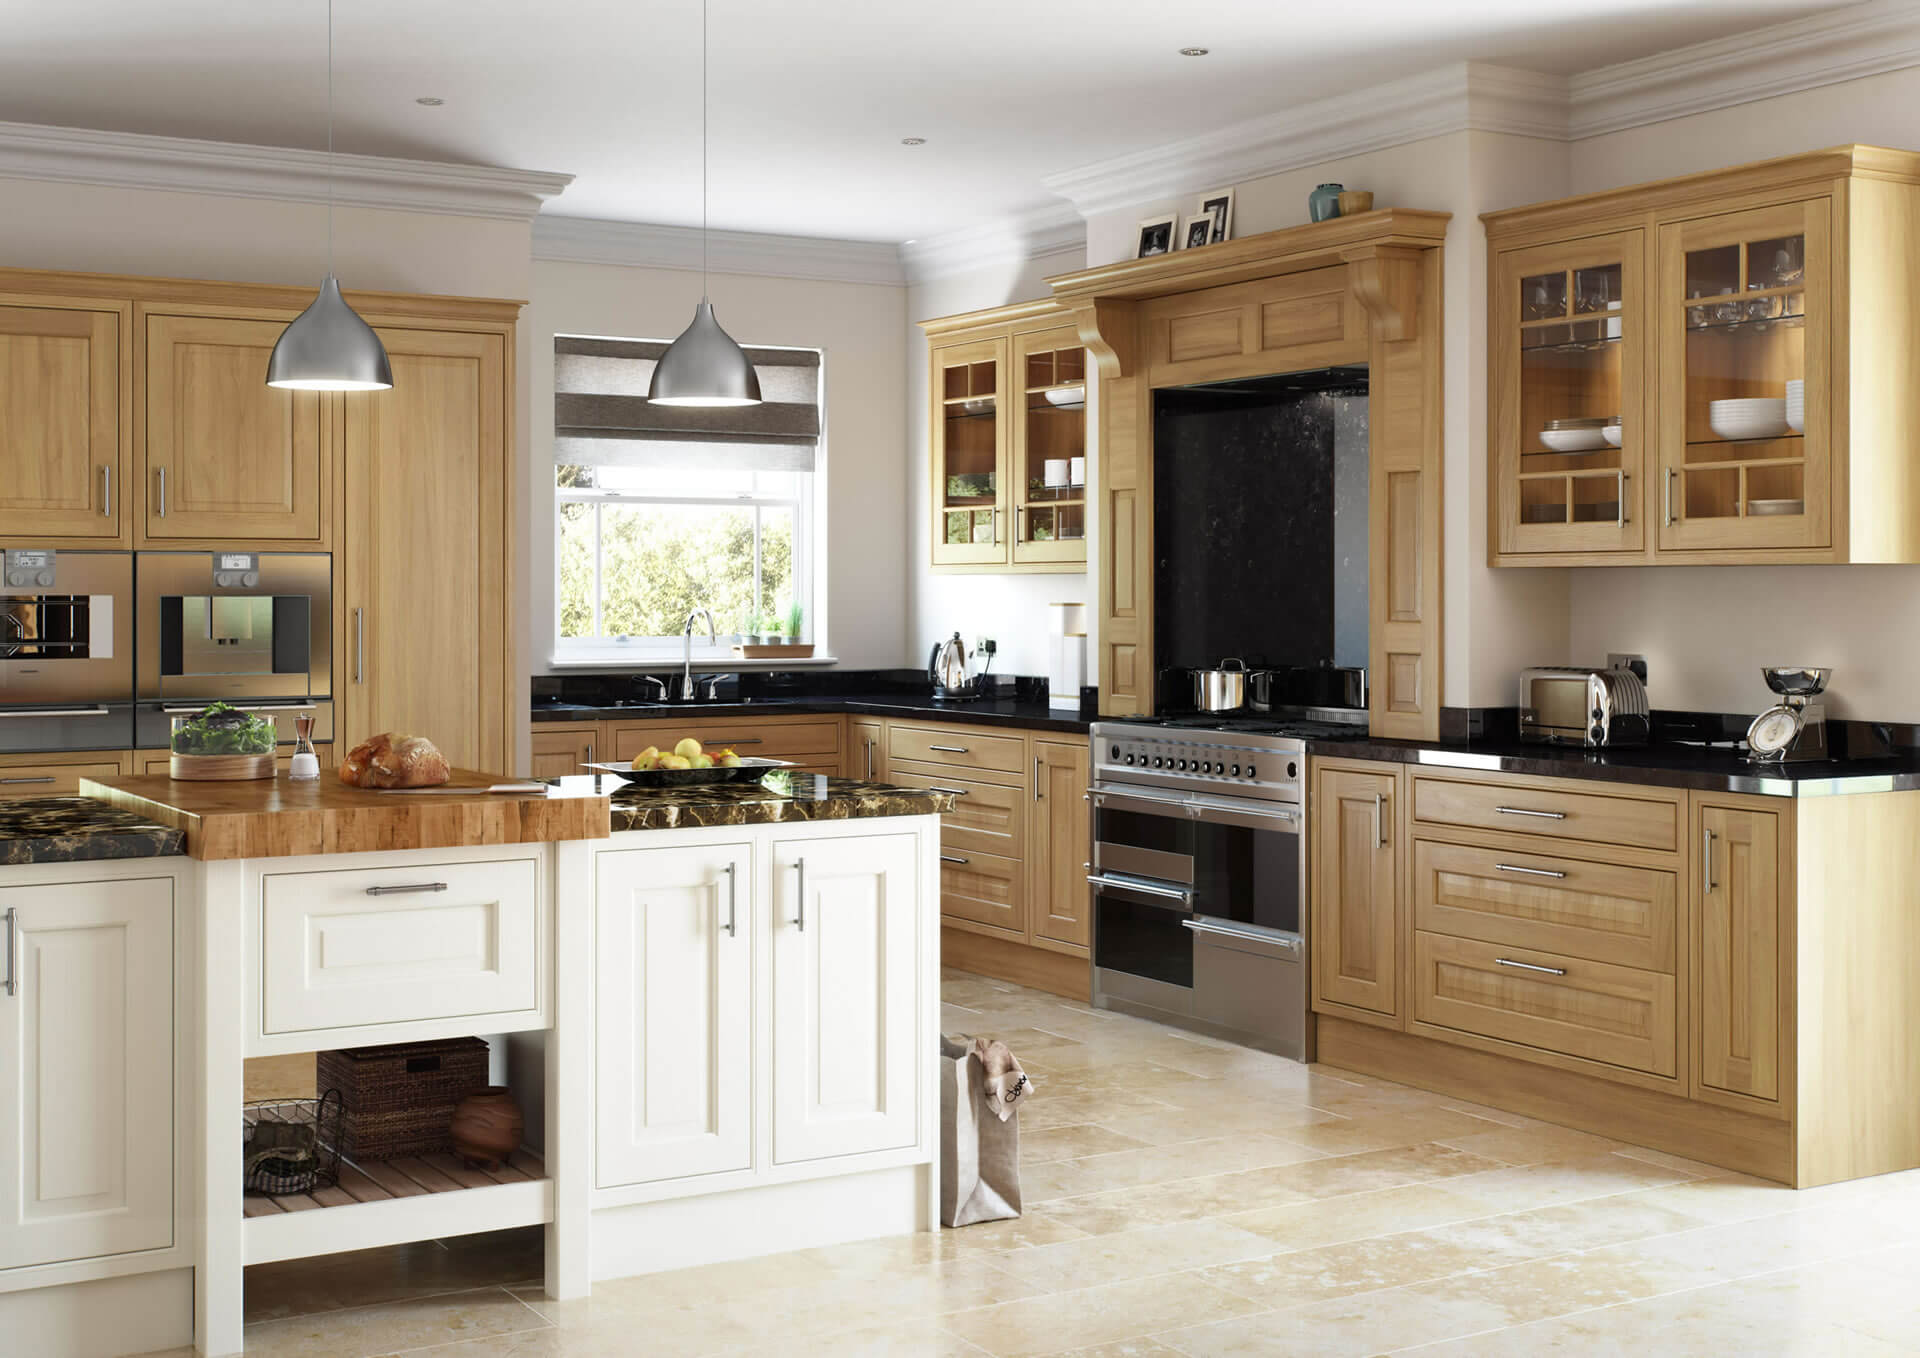 Kitchen styles hugel kitchens yorkshire we have a comprehensive range of styles that can be mixed and matched to create your perfect kitchen solutioingenieria Gallery